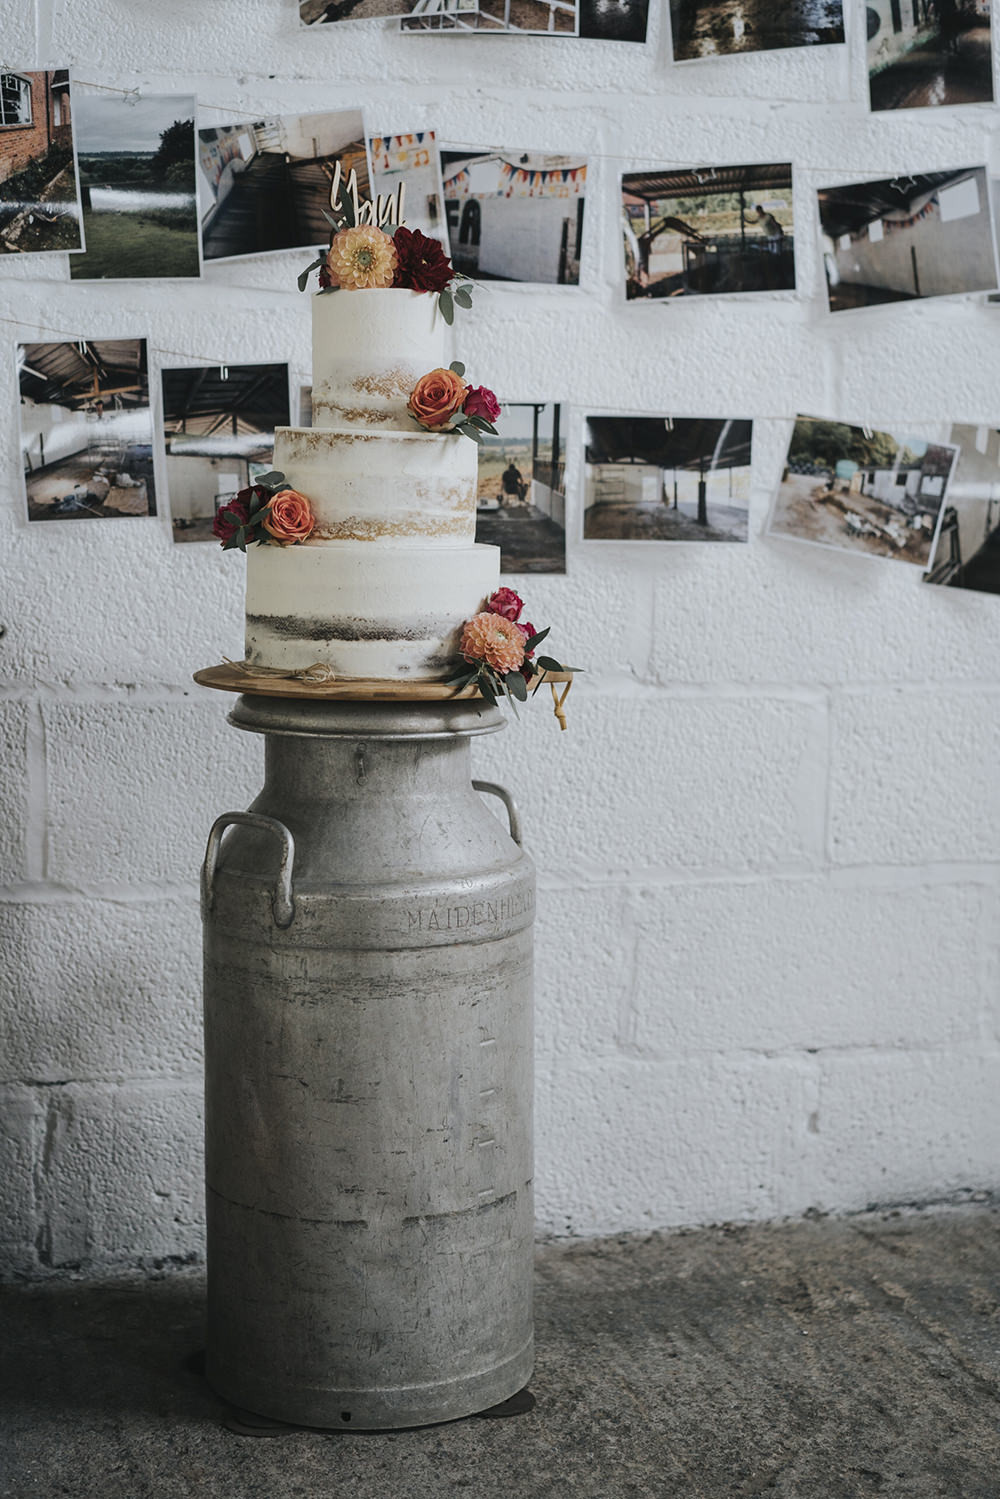 Semi Naked Buttercream Cake Dahlia Rose Coral Burgundy Milk Churn Celestial Cow Shed Wedding Tora Baker Photography